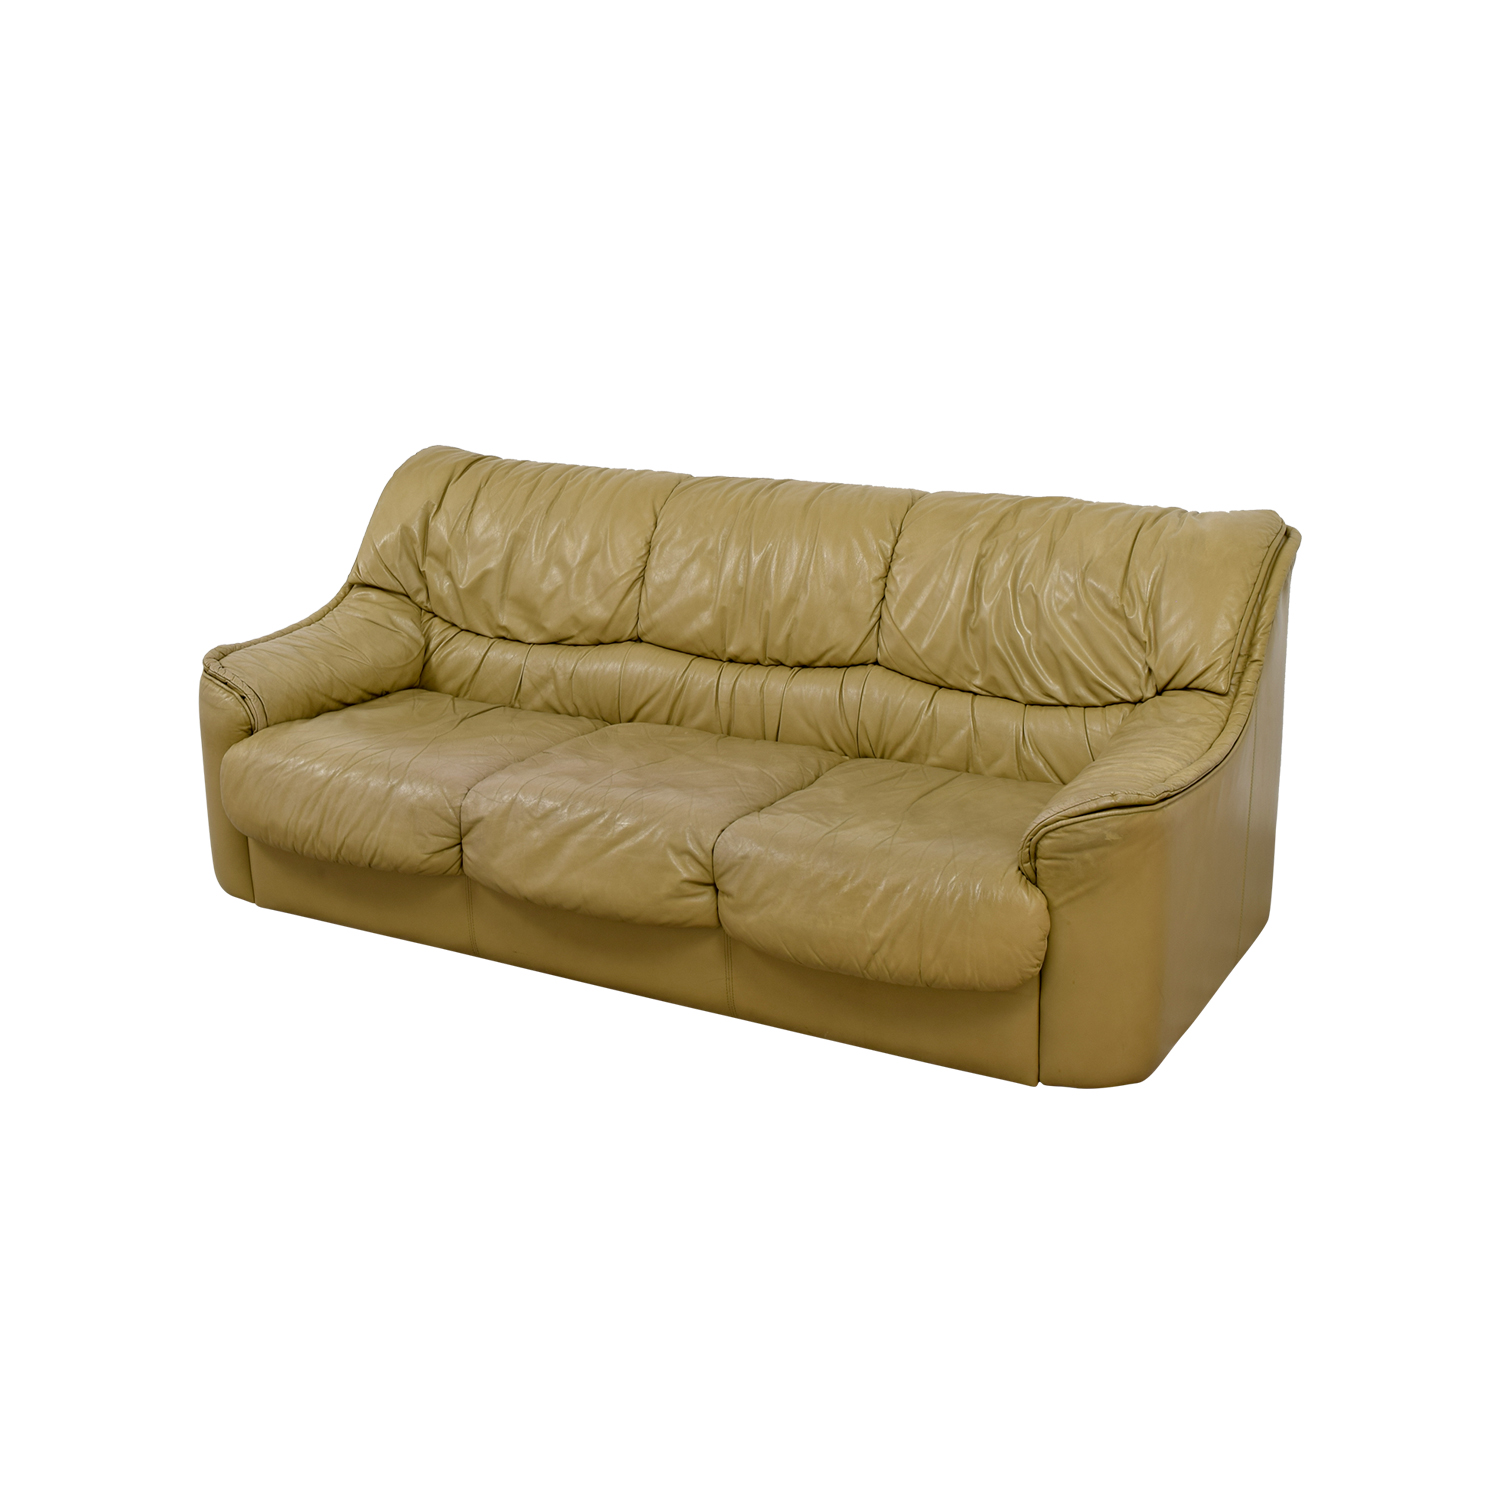 Buying A Second Hand Sofa 90 Off Beige Leather Sofa Sofas